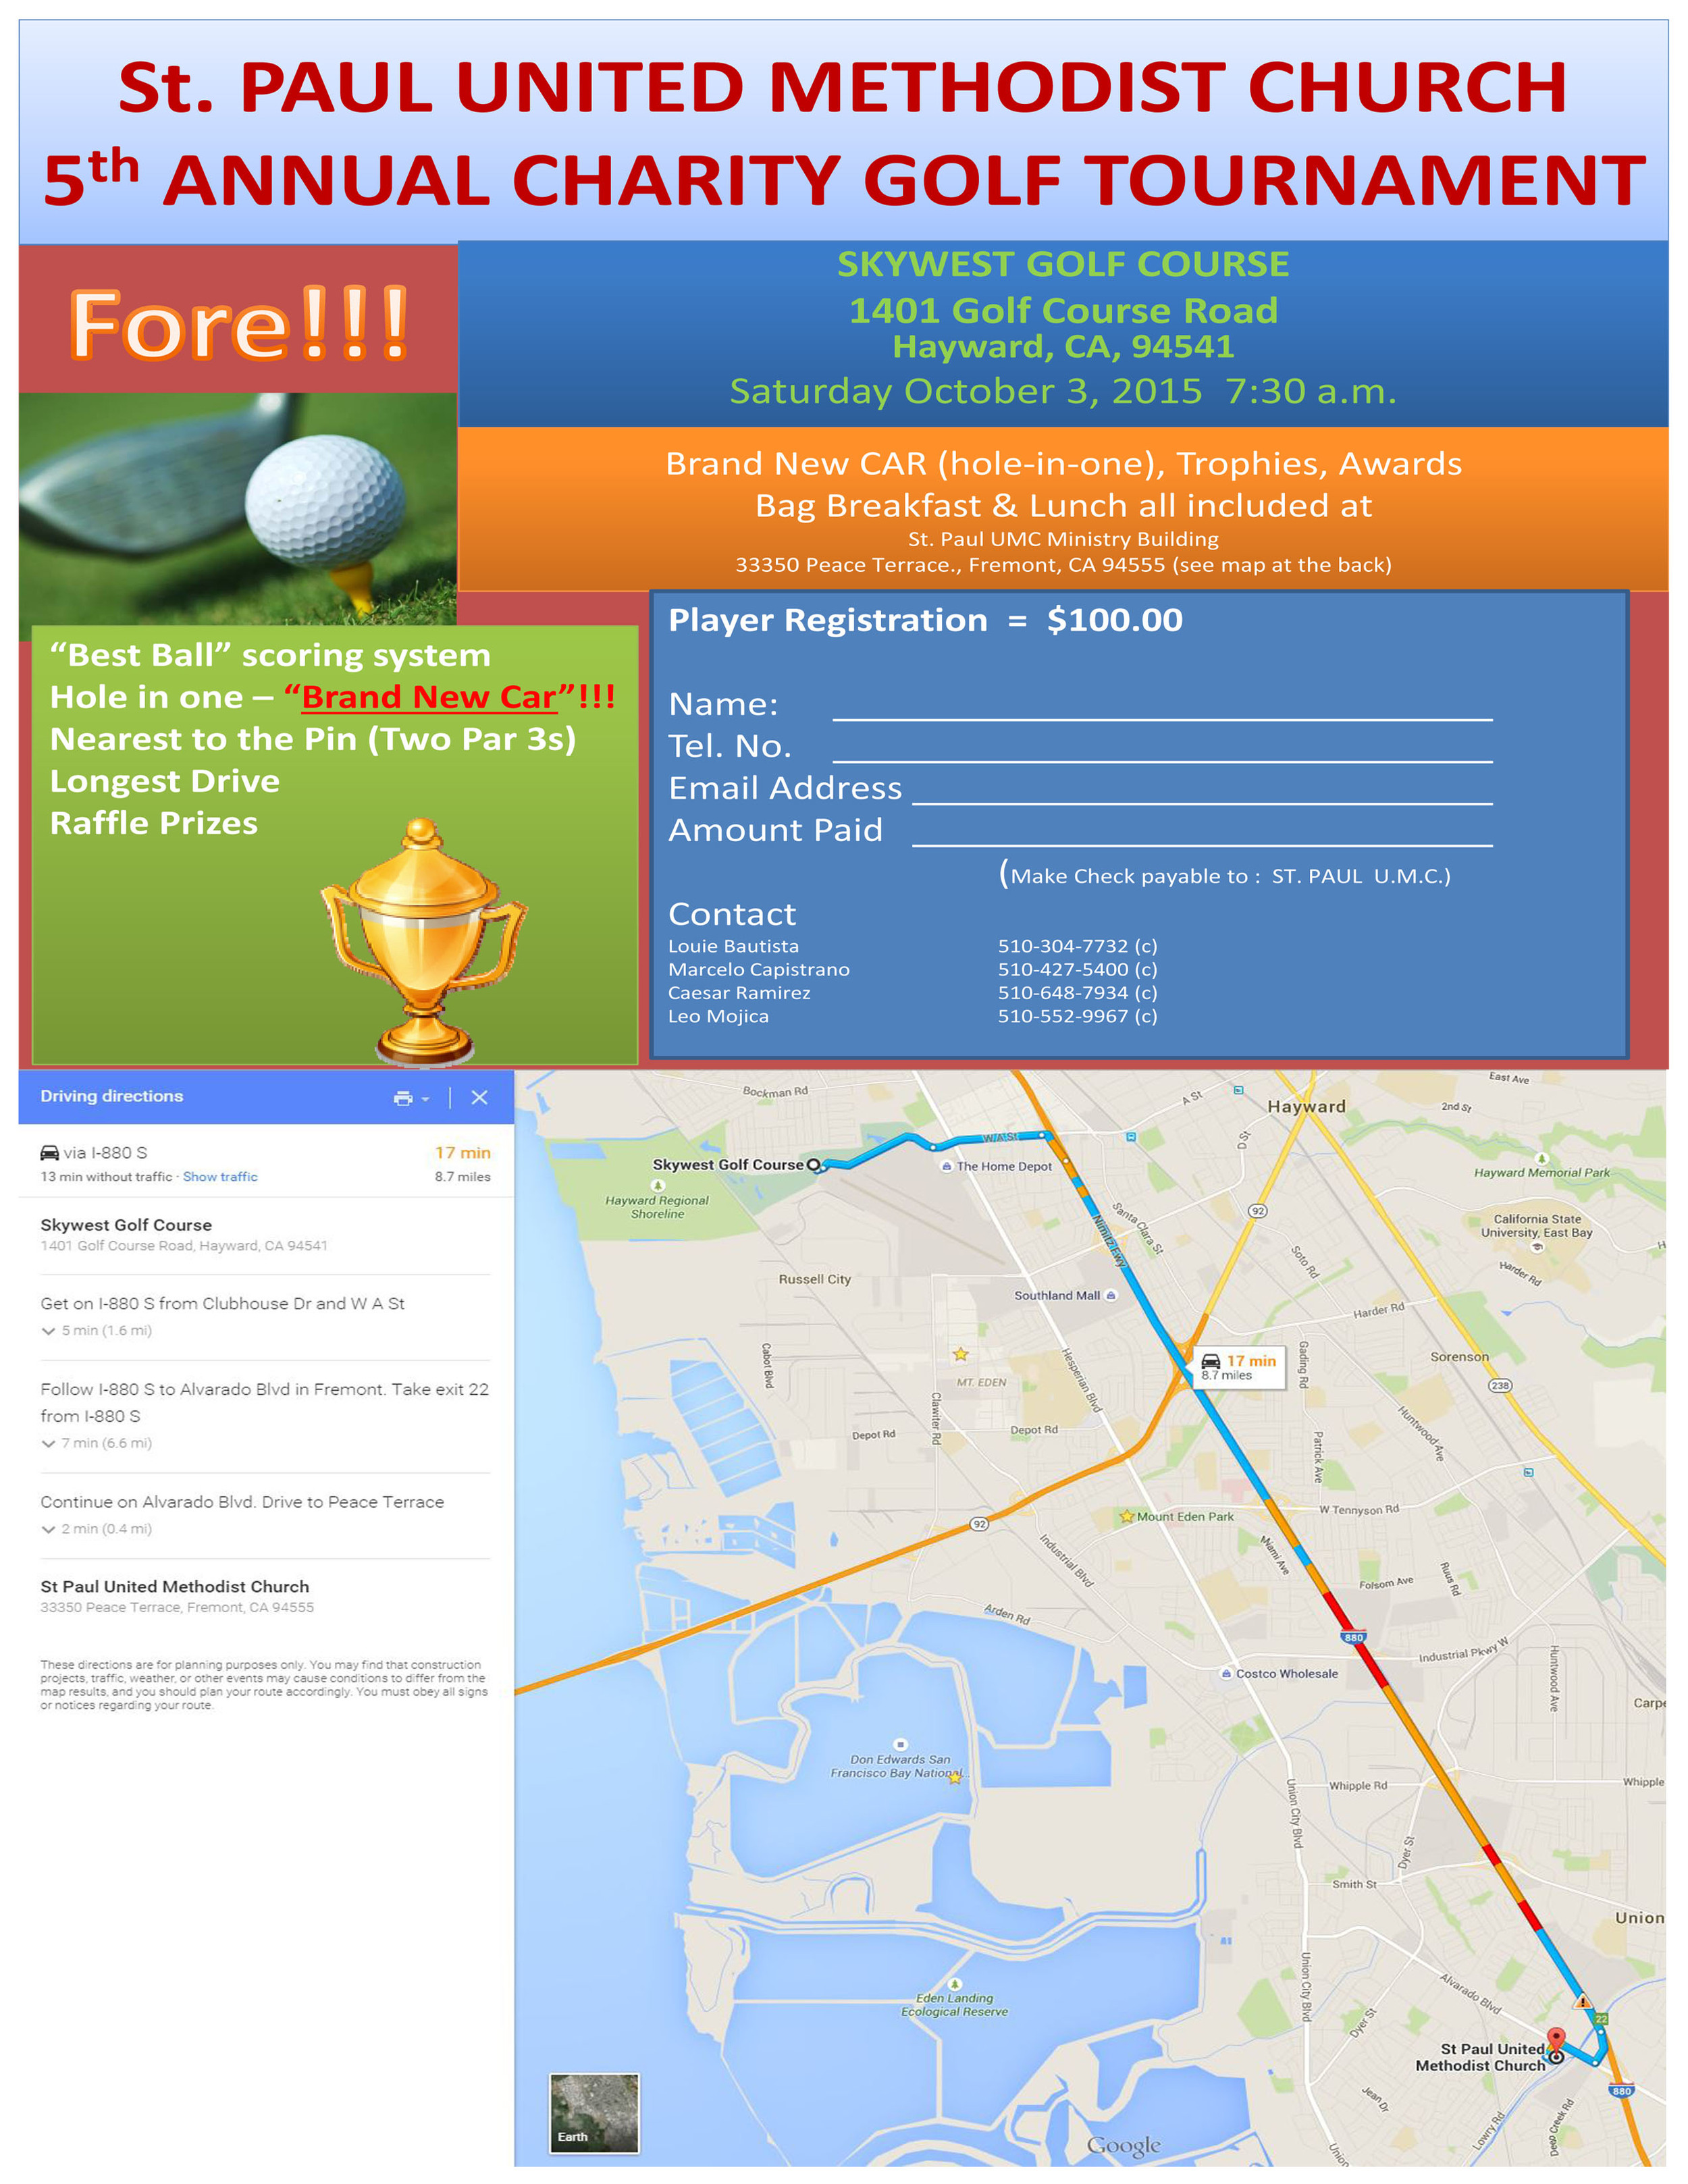 UMM Golf tourney 2015 flyer